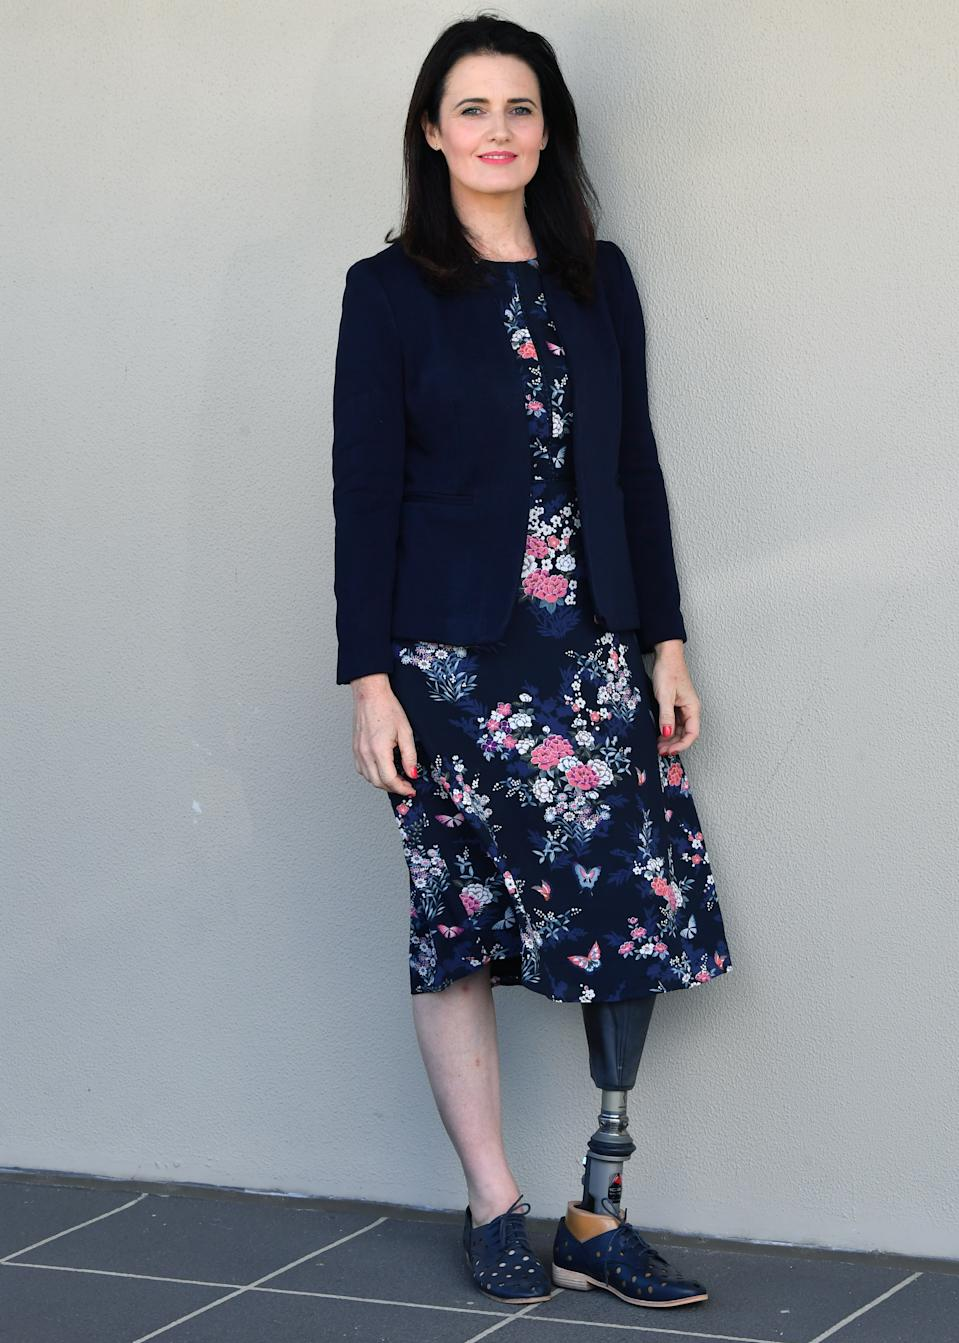 Disability advocate Ali France